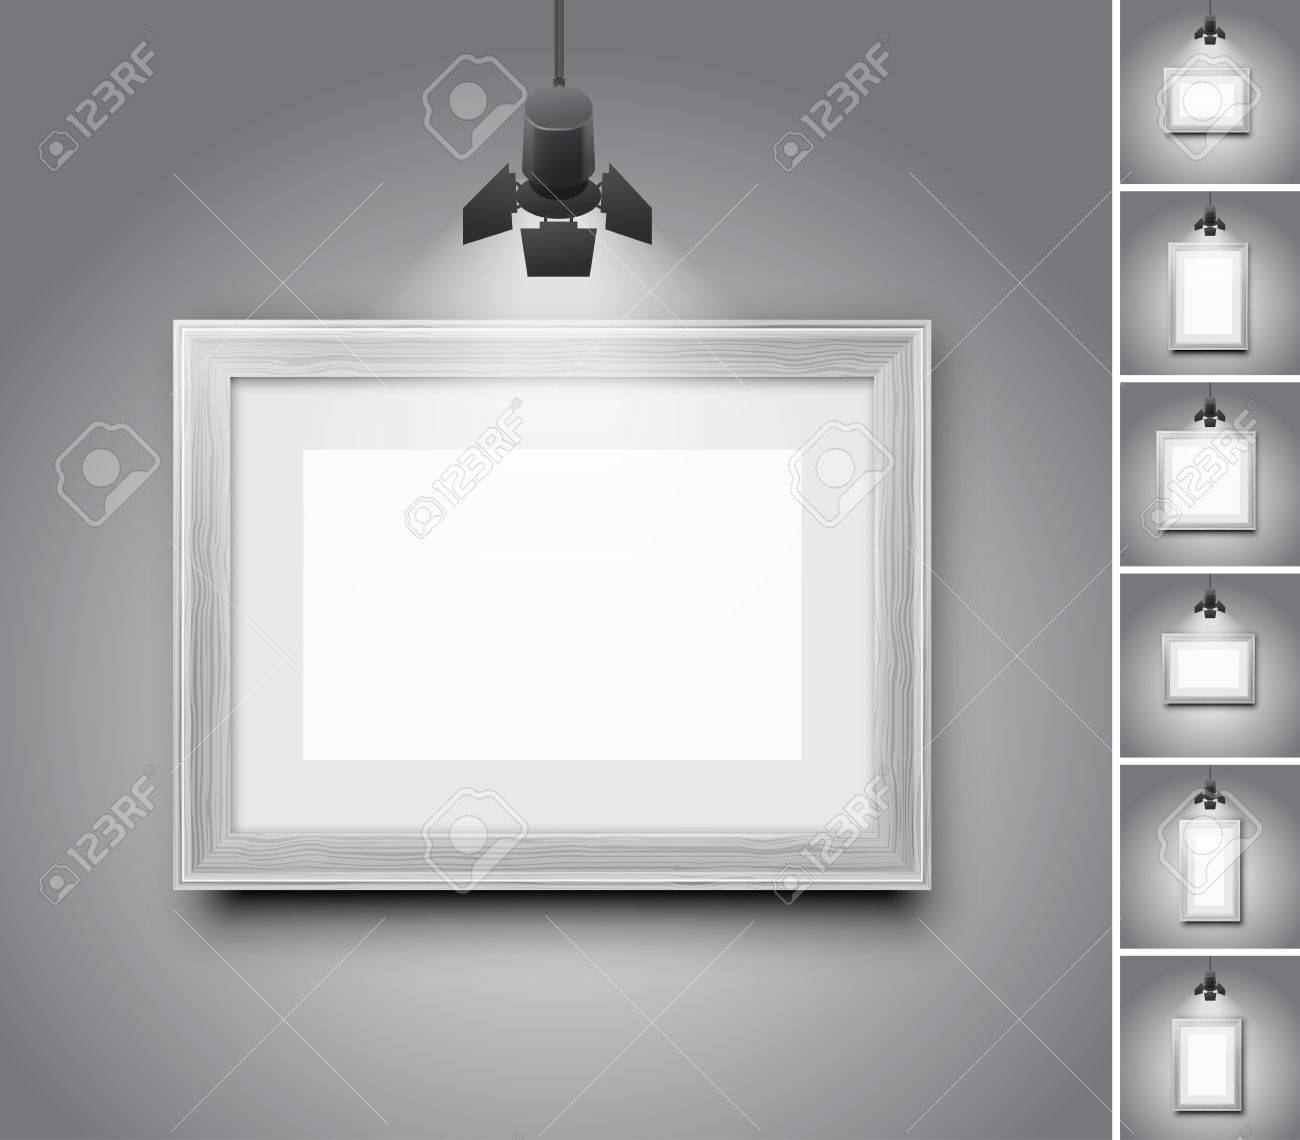 Wood frames set free vector - Blank Studio Wall And White Wooden Picture Frame Under Light Lamp Set Of Realistic Vector